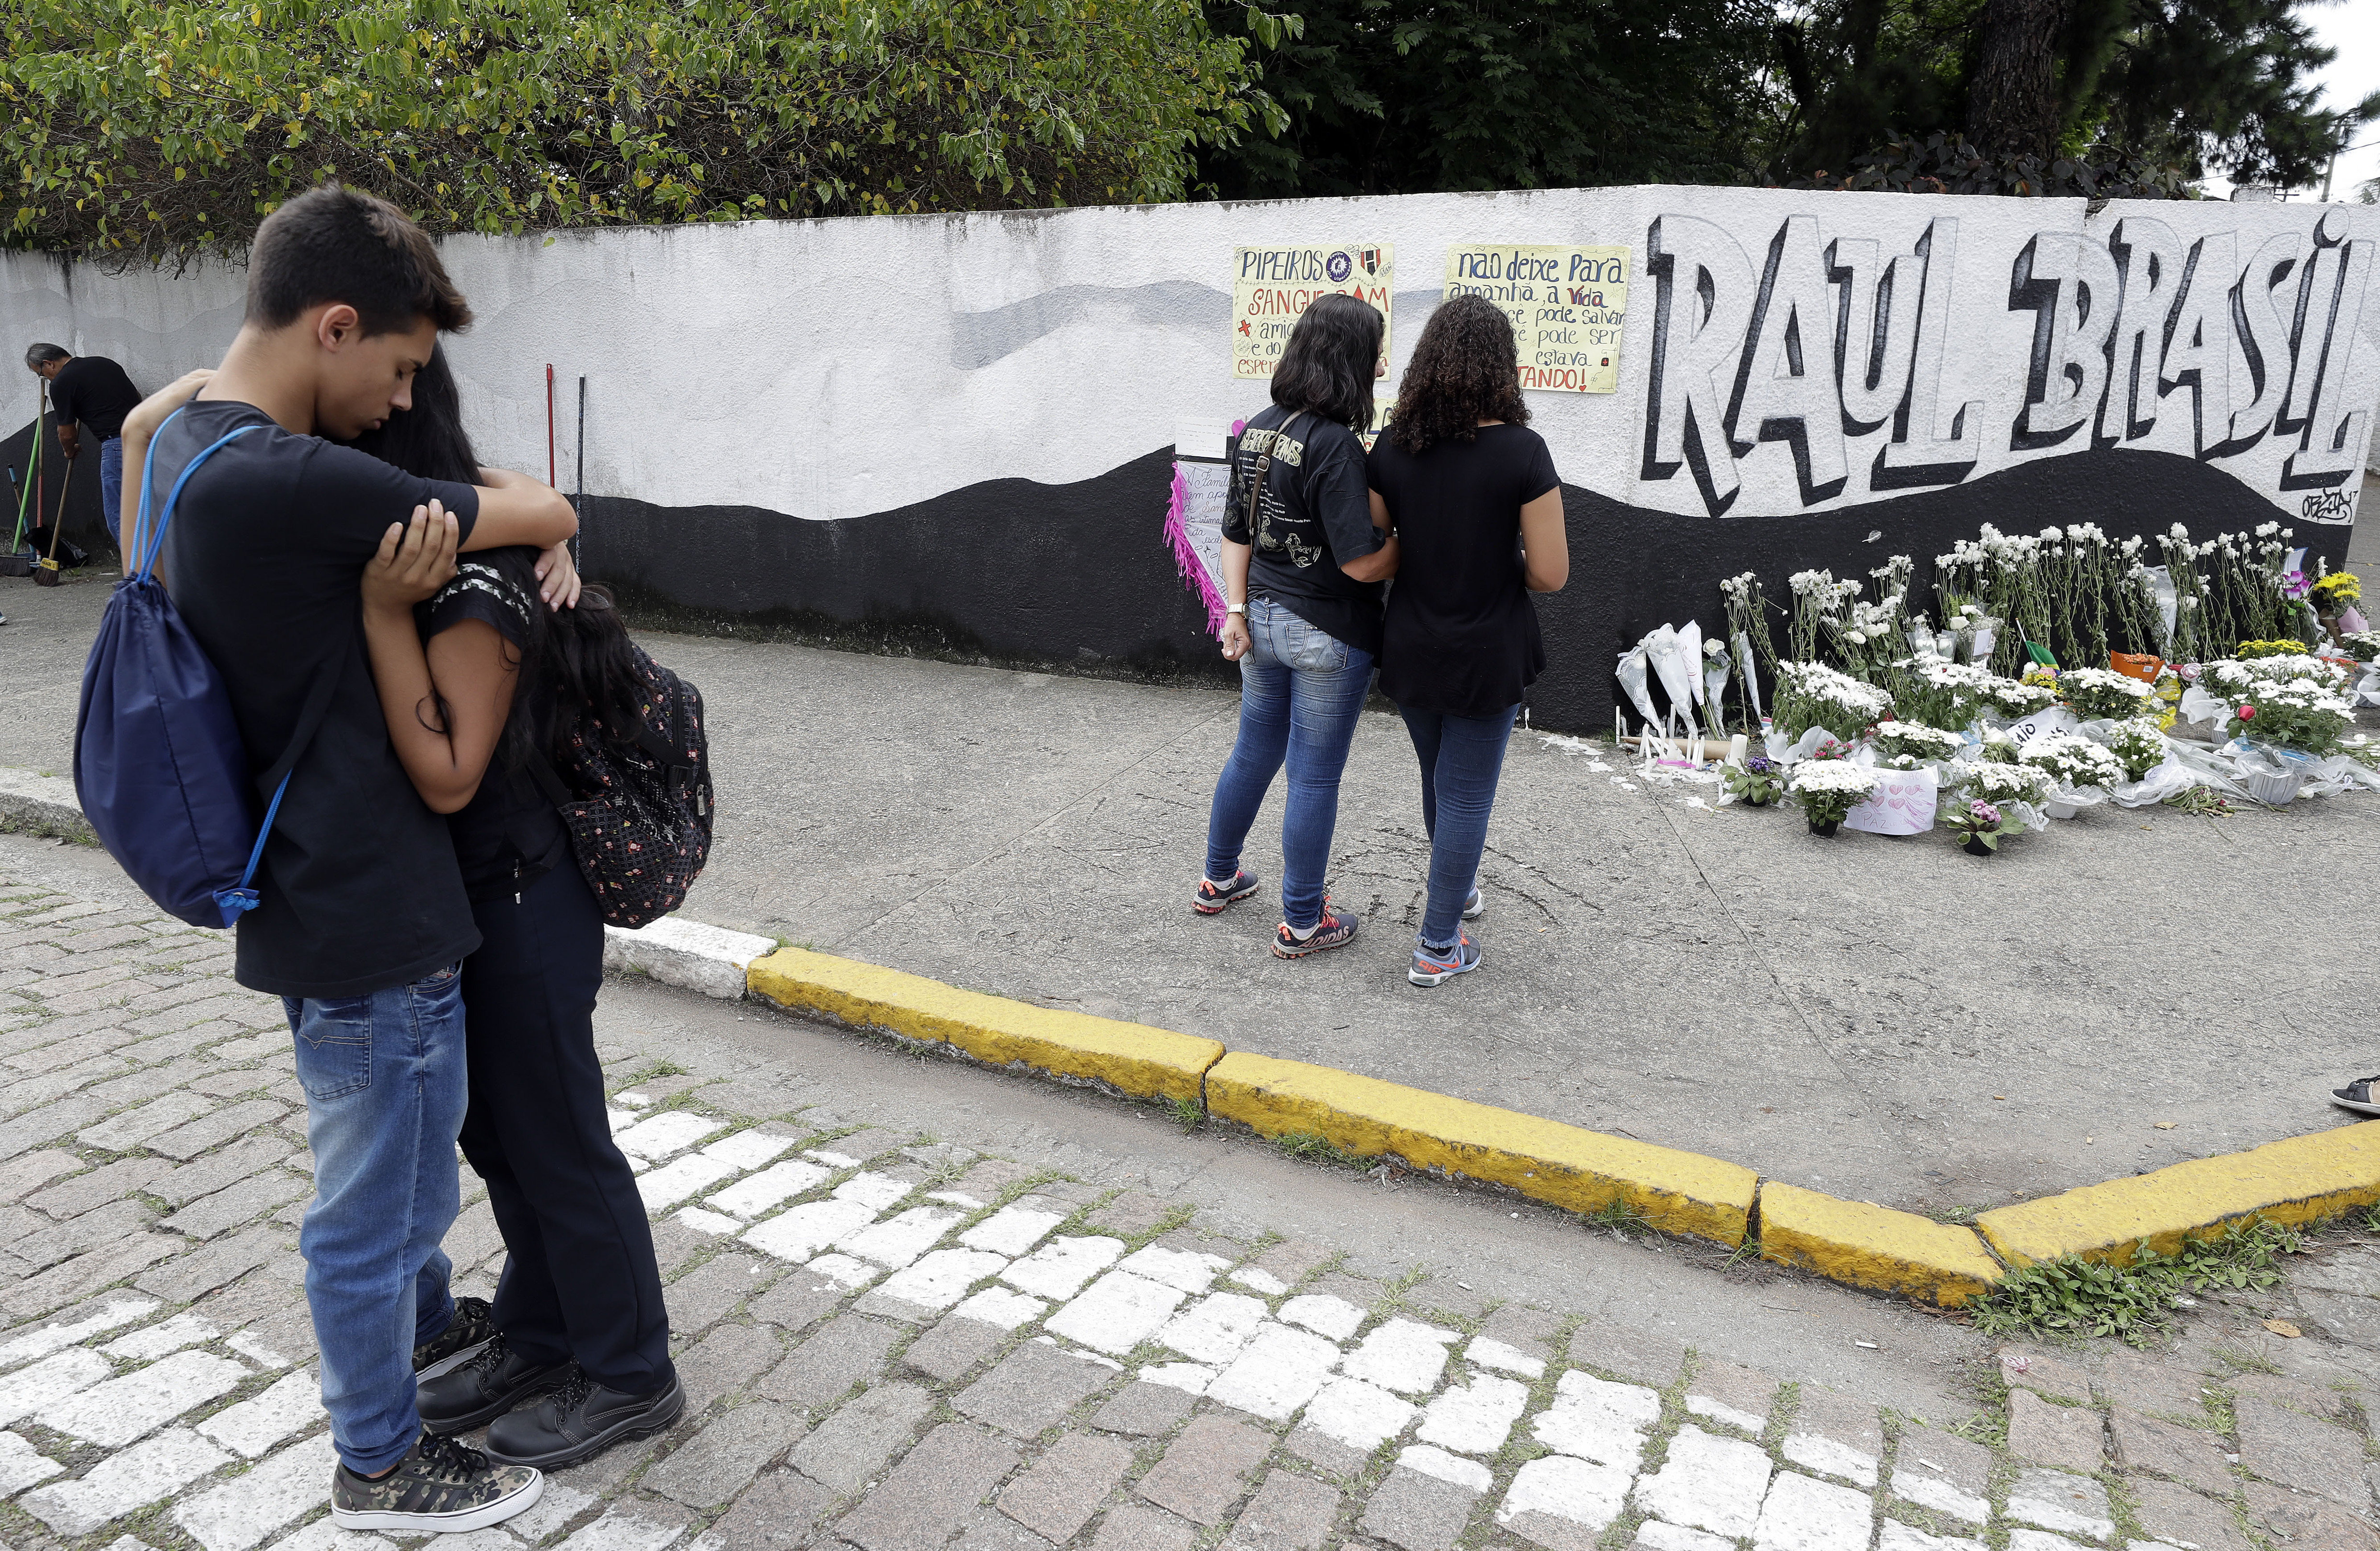 Students embrace outside the Raul Brasil state school one day after a mass shooting there in Suzano, Brazil, on March 14, 201